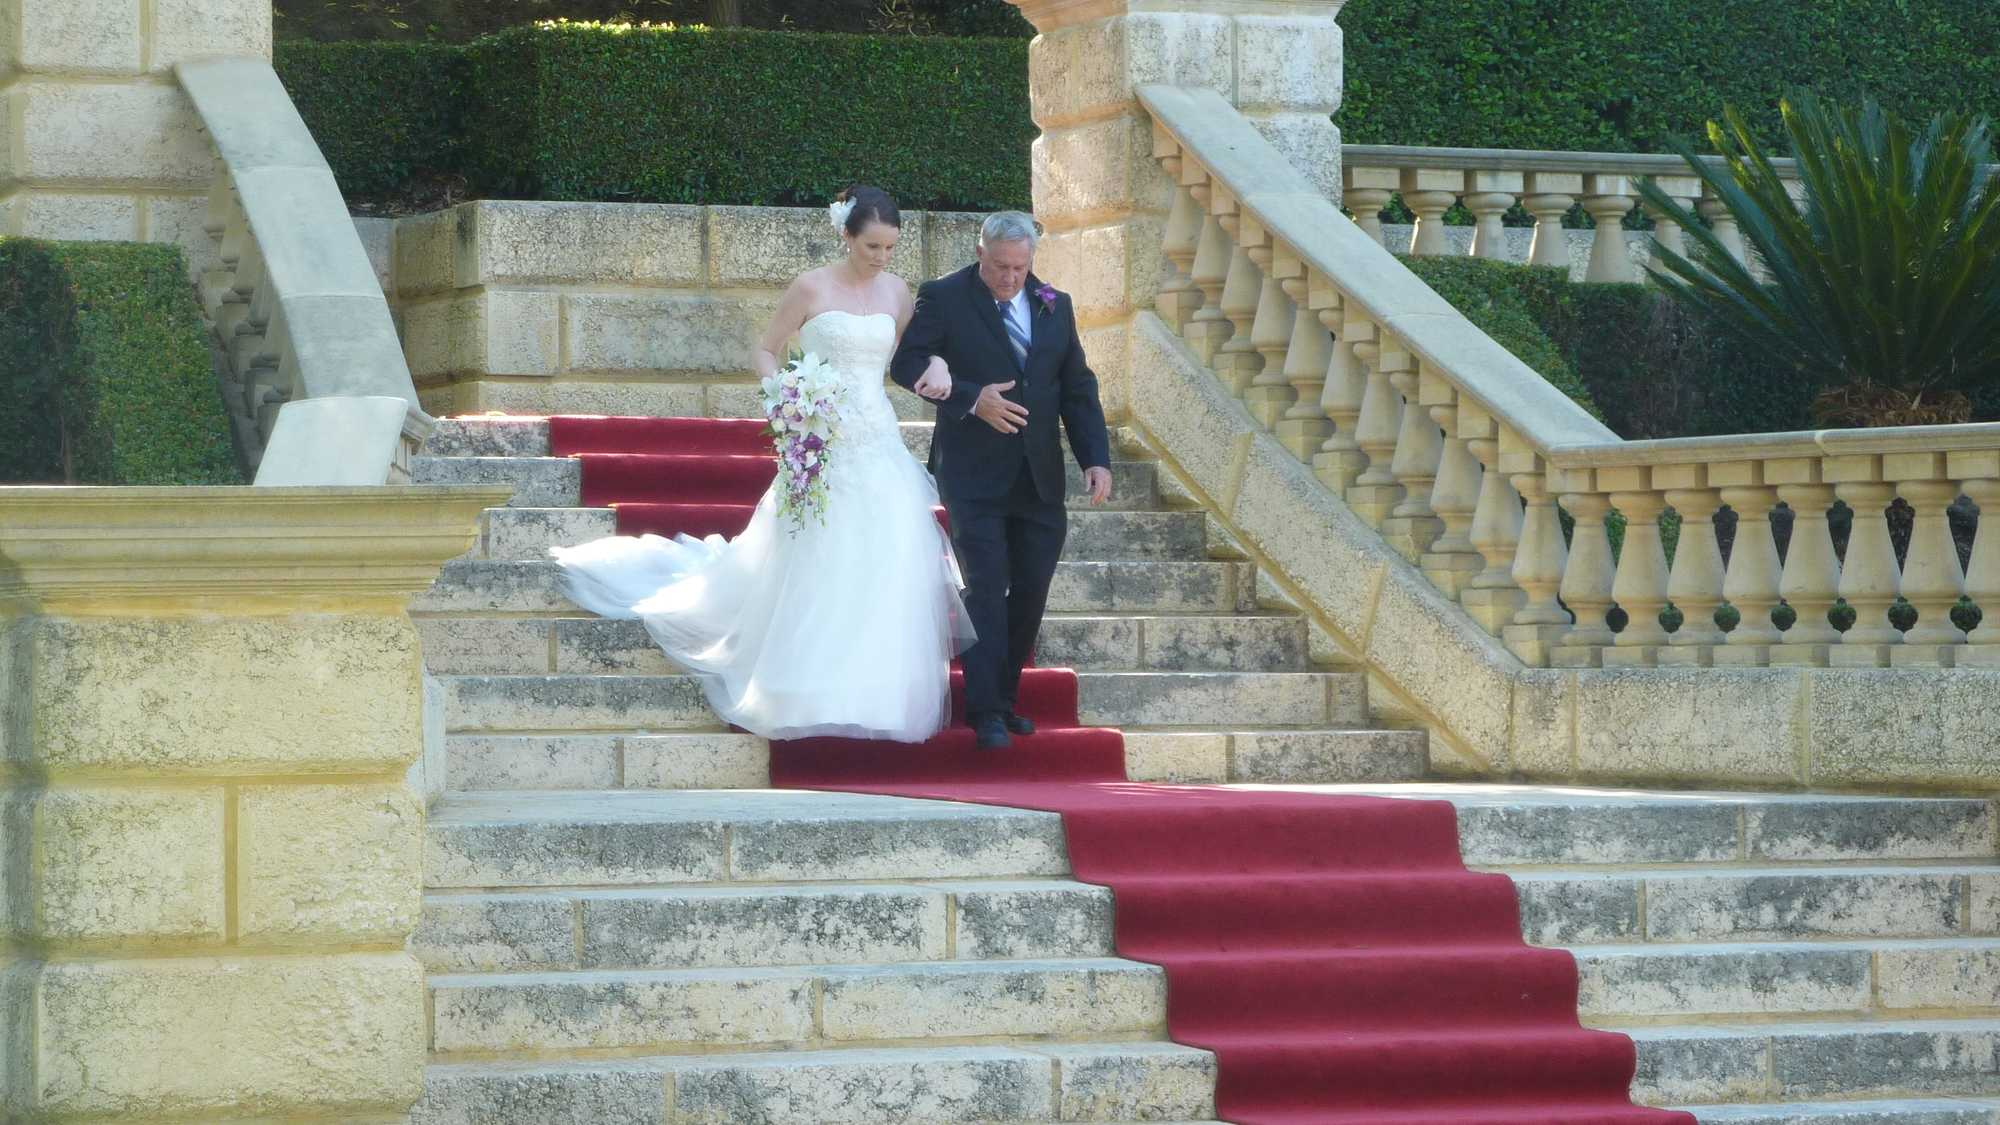 Photo of a bride being walked down a large set of sandstone steps by her father, walking down the aisle lined with a long red carpet. It's outdoors and there are hedges and greenery all around.